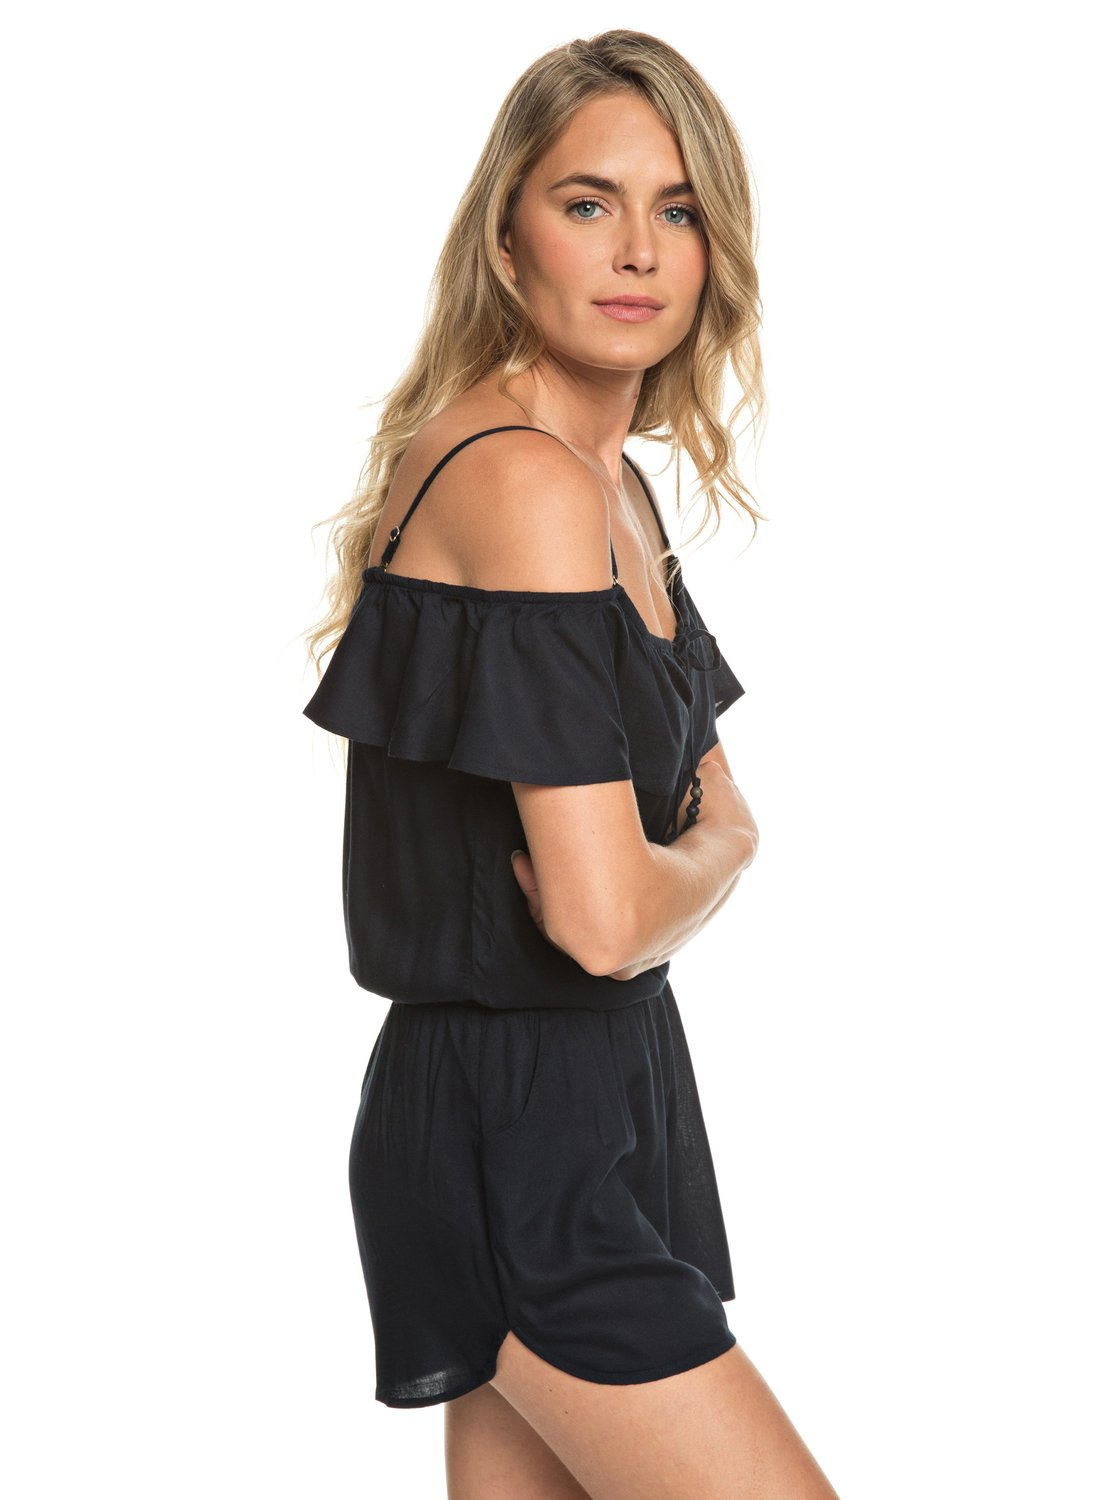 2a3a9489b7da ROXY Western Holiday off The Shoulder Romper Crd0 S. About this product.  Picture 1 of 13  Picture 2 of 13 ...